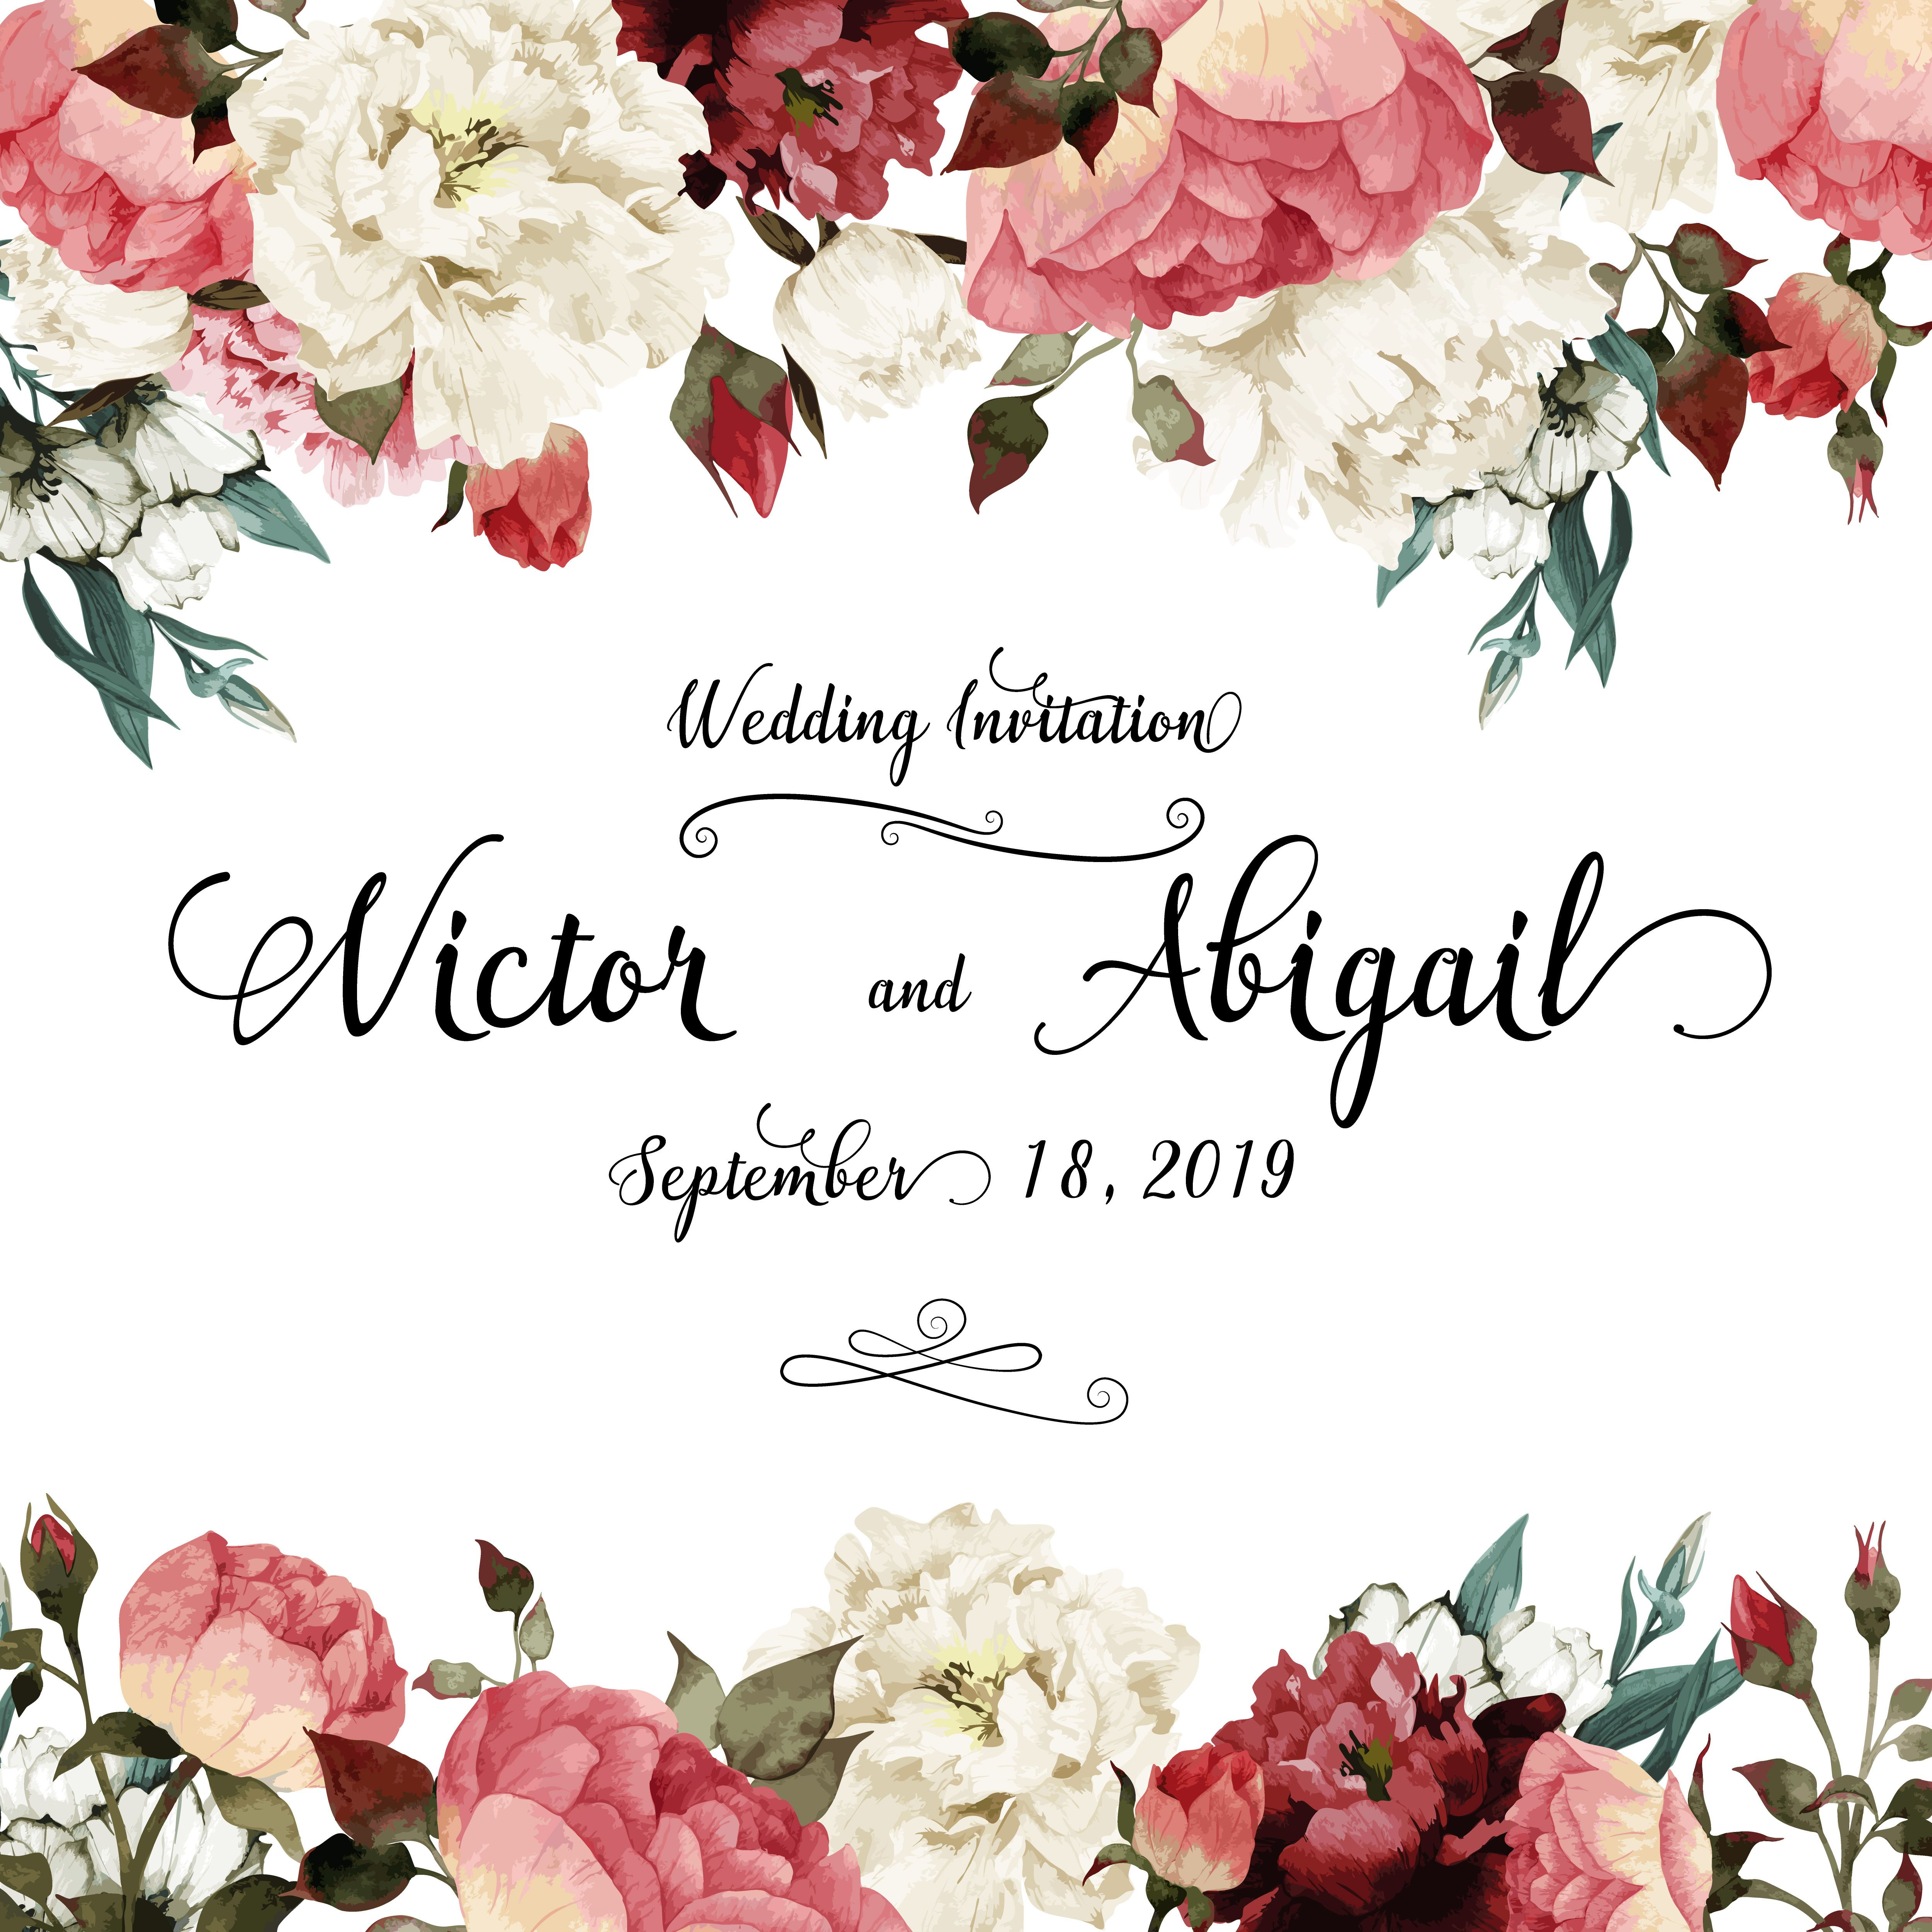 Wedding Invite Borders: Aa614ee7ab55a7aa919d2d0522039919.jpg (5000×5000)